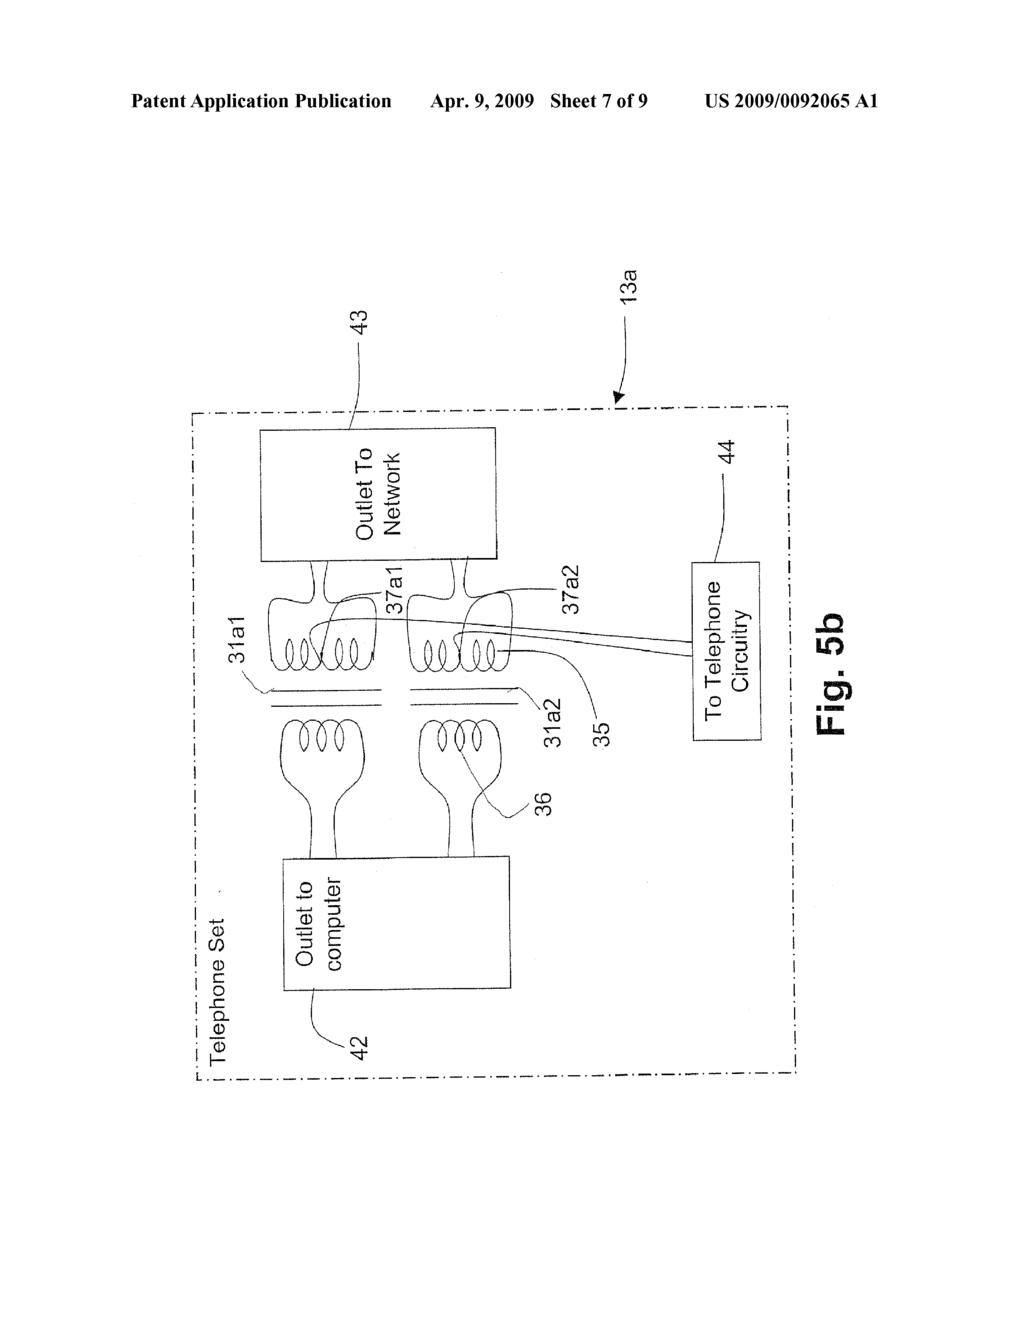 Telephone Communication System And Method Over Local Area Network Wiring Diagram Schematic Image 08